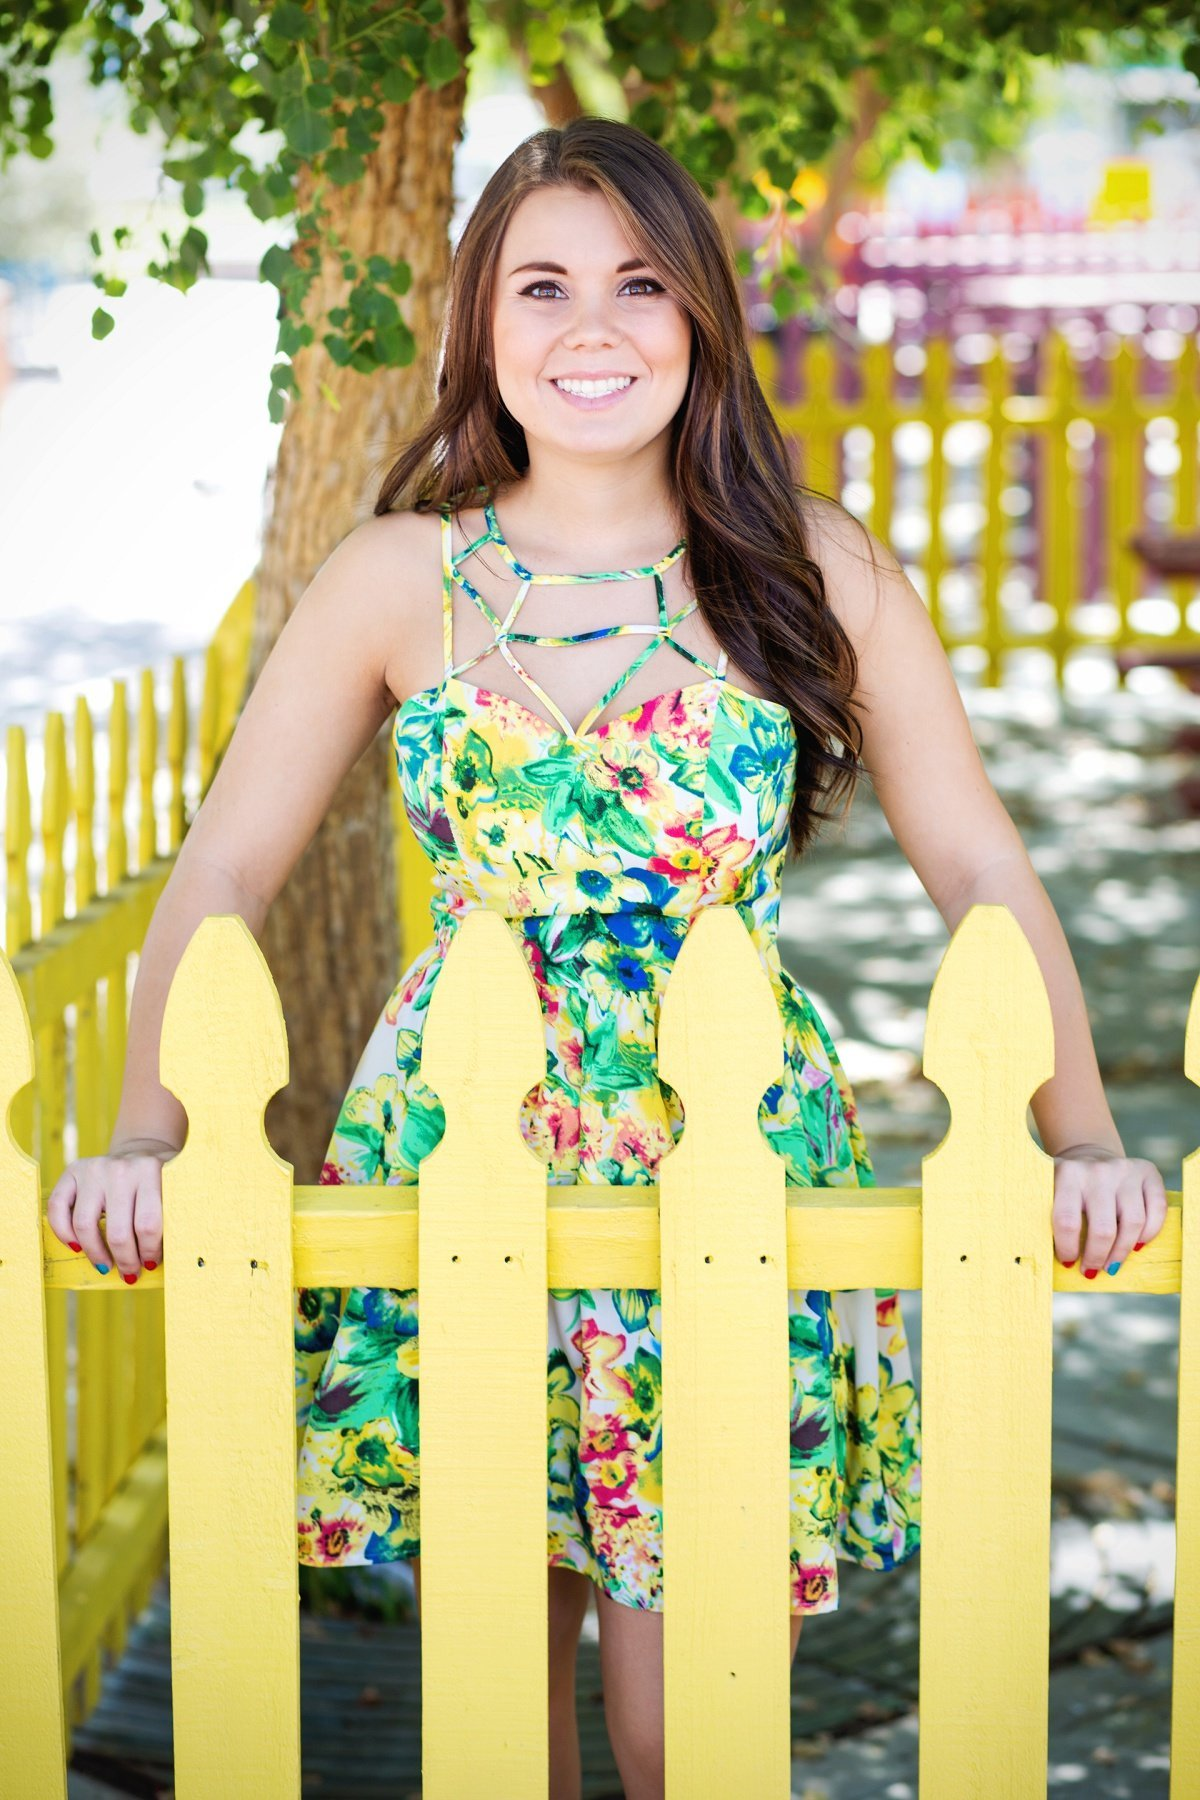 Inidividuals Portraits Senior Pictures Headshots Professional Photography Session Graduation Colorado Springs (79)